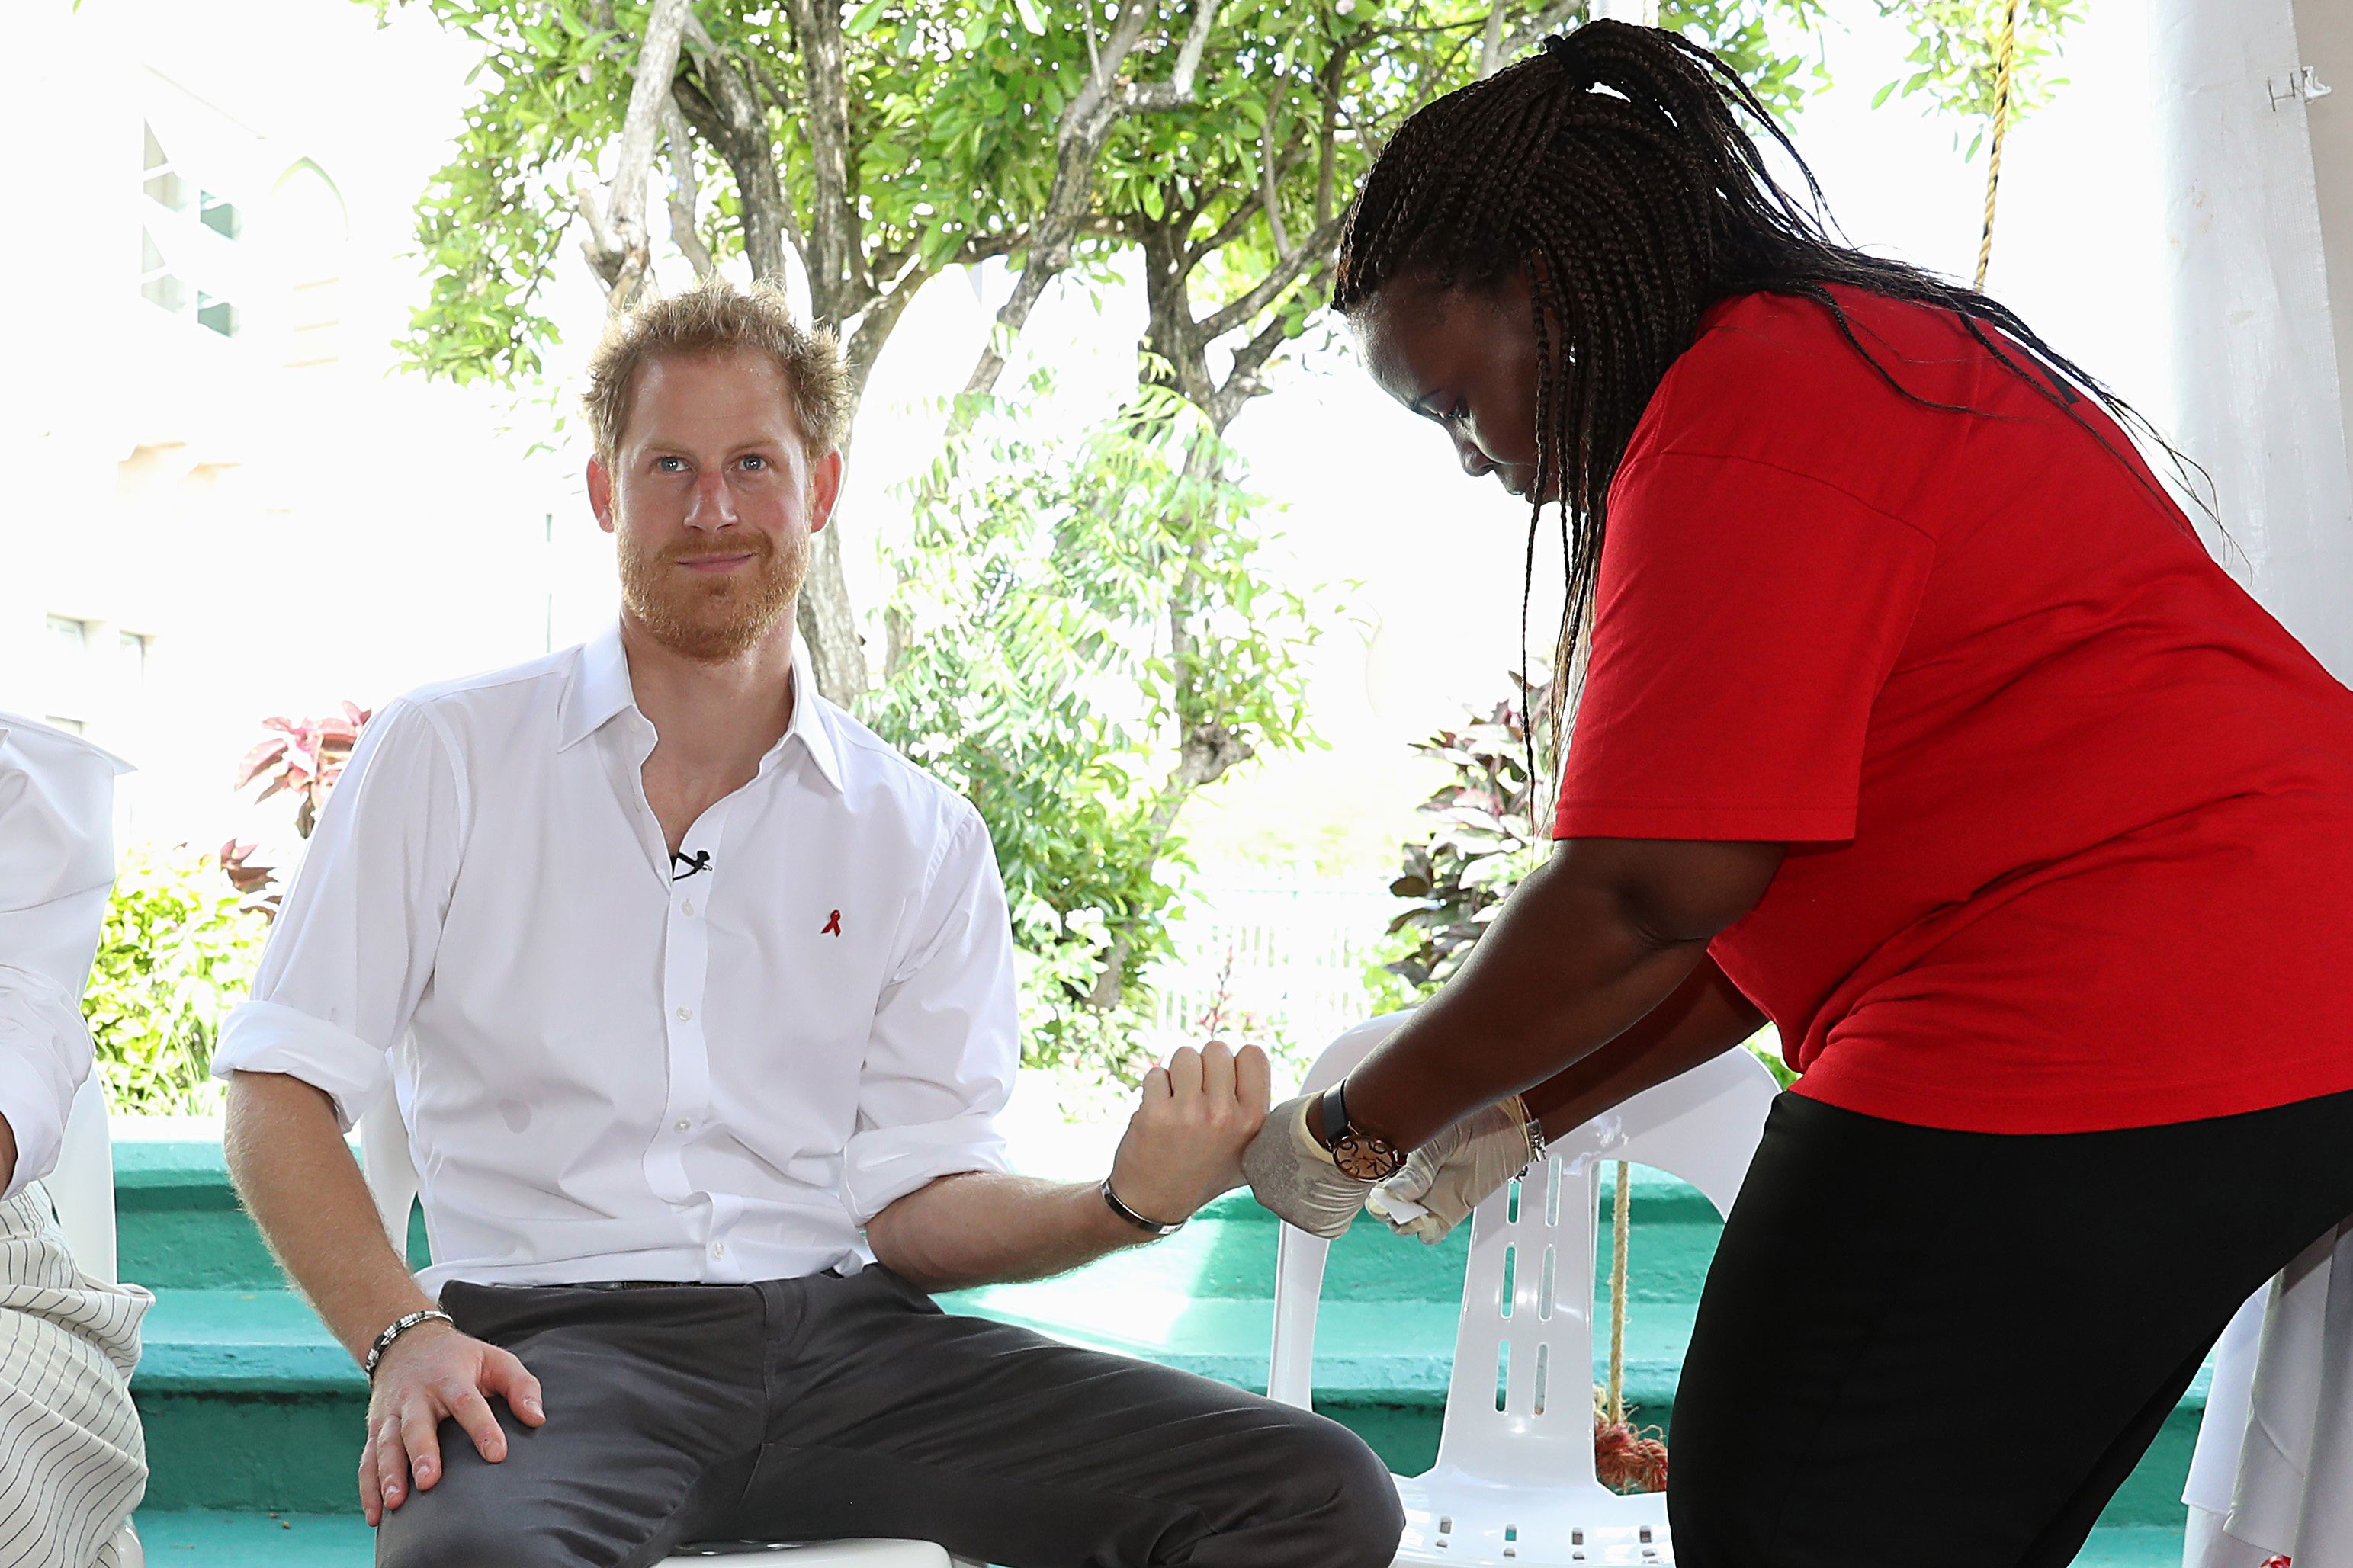 Prince Harry calls for HIV testing to be seen as completely normal